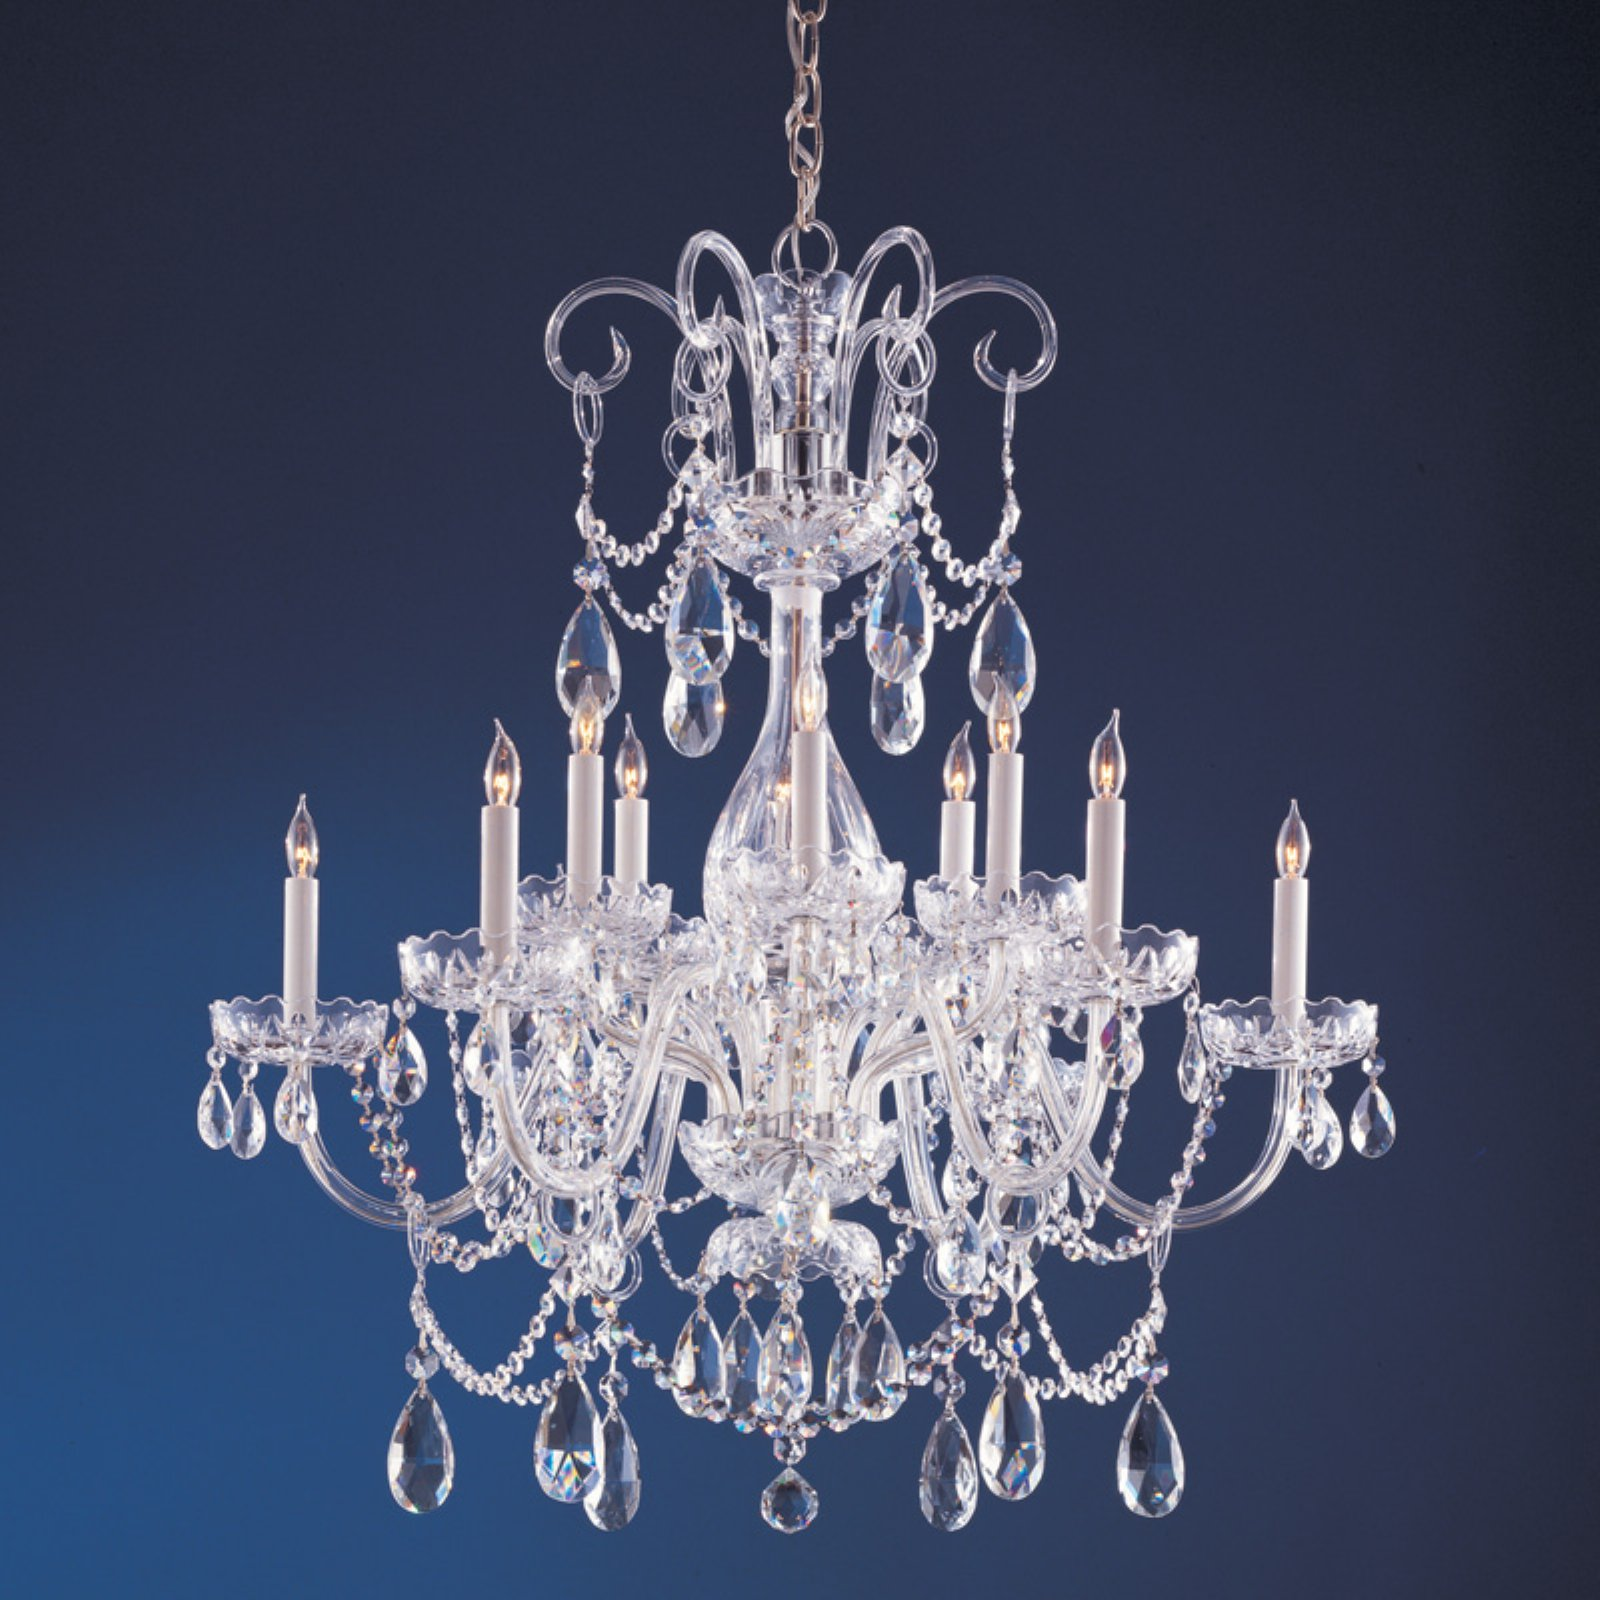 Crystorama 1035-CH-CL-MWP Traditional Crystal Chandelier 32W in. by Crystorama